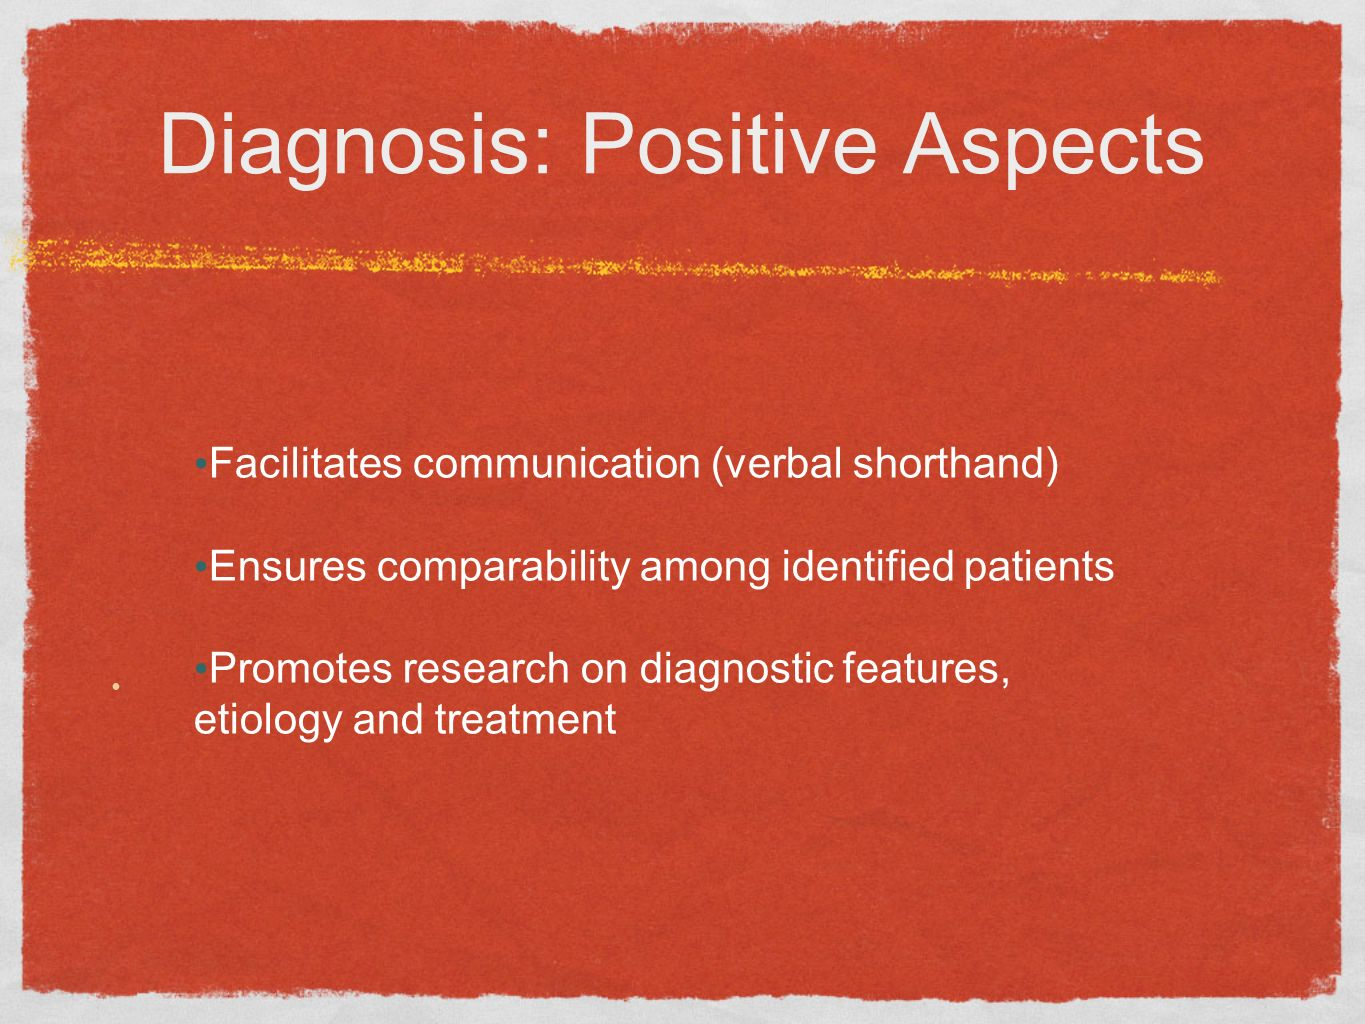 Diagnosis: Positive Aspects